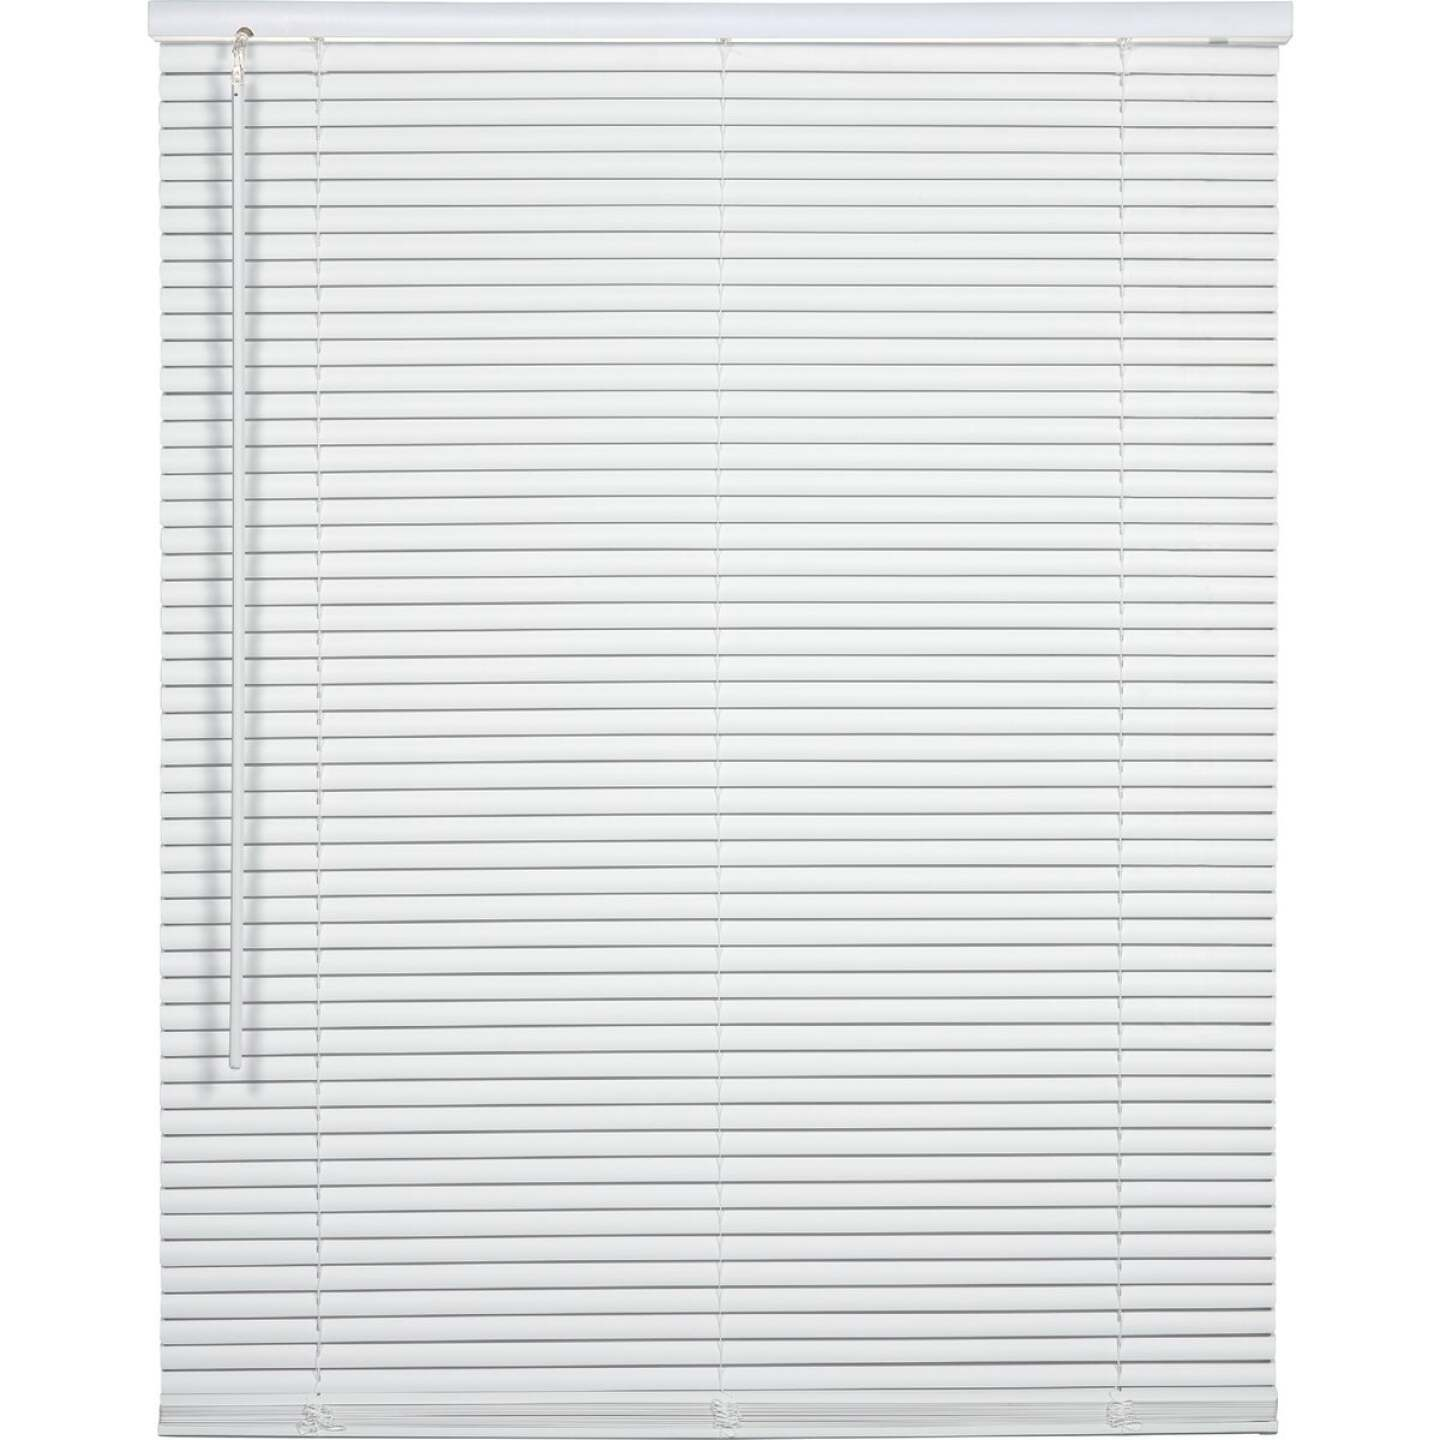 Home Impressions 24 In. x 64 In. x 1 In. White Vinyl Light Filtering Cordless Mini Blind Image 1